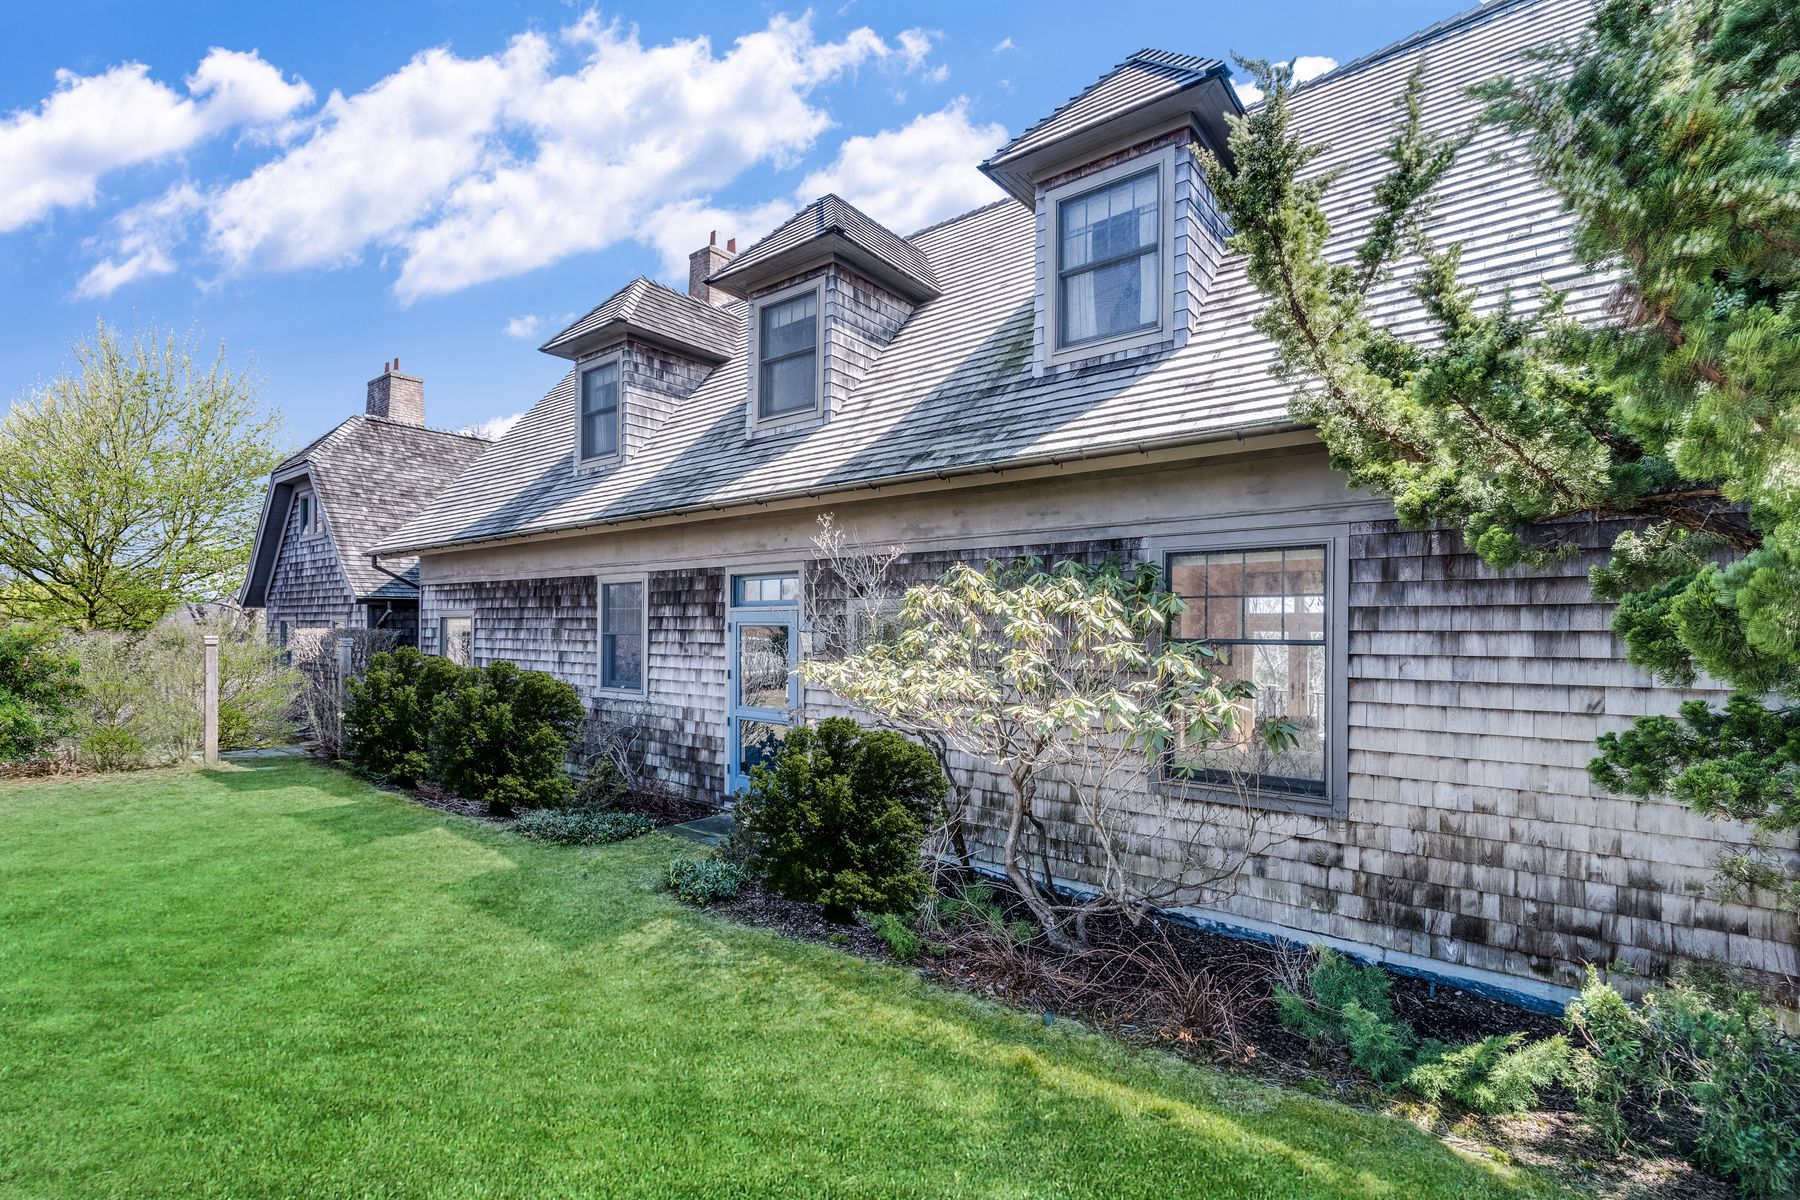 Single Family Homes for Sale at Ocean View Fleetwood Cottage 161 Bluff Road Amagansett, New York 11930 United States